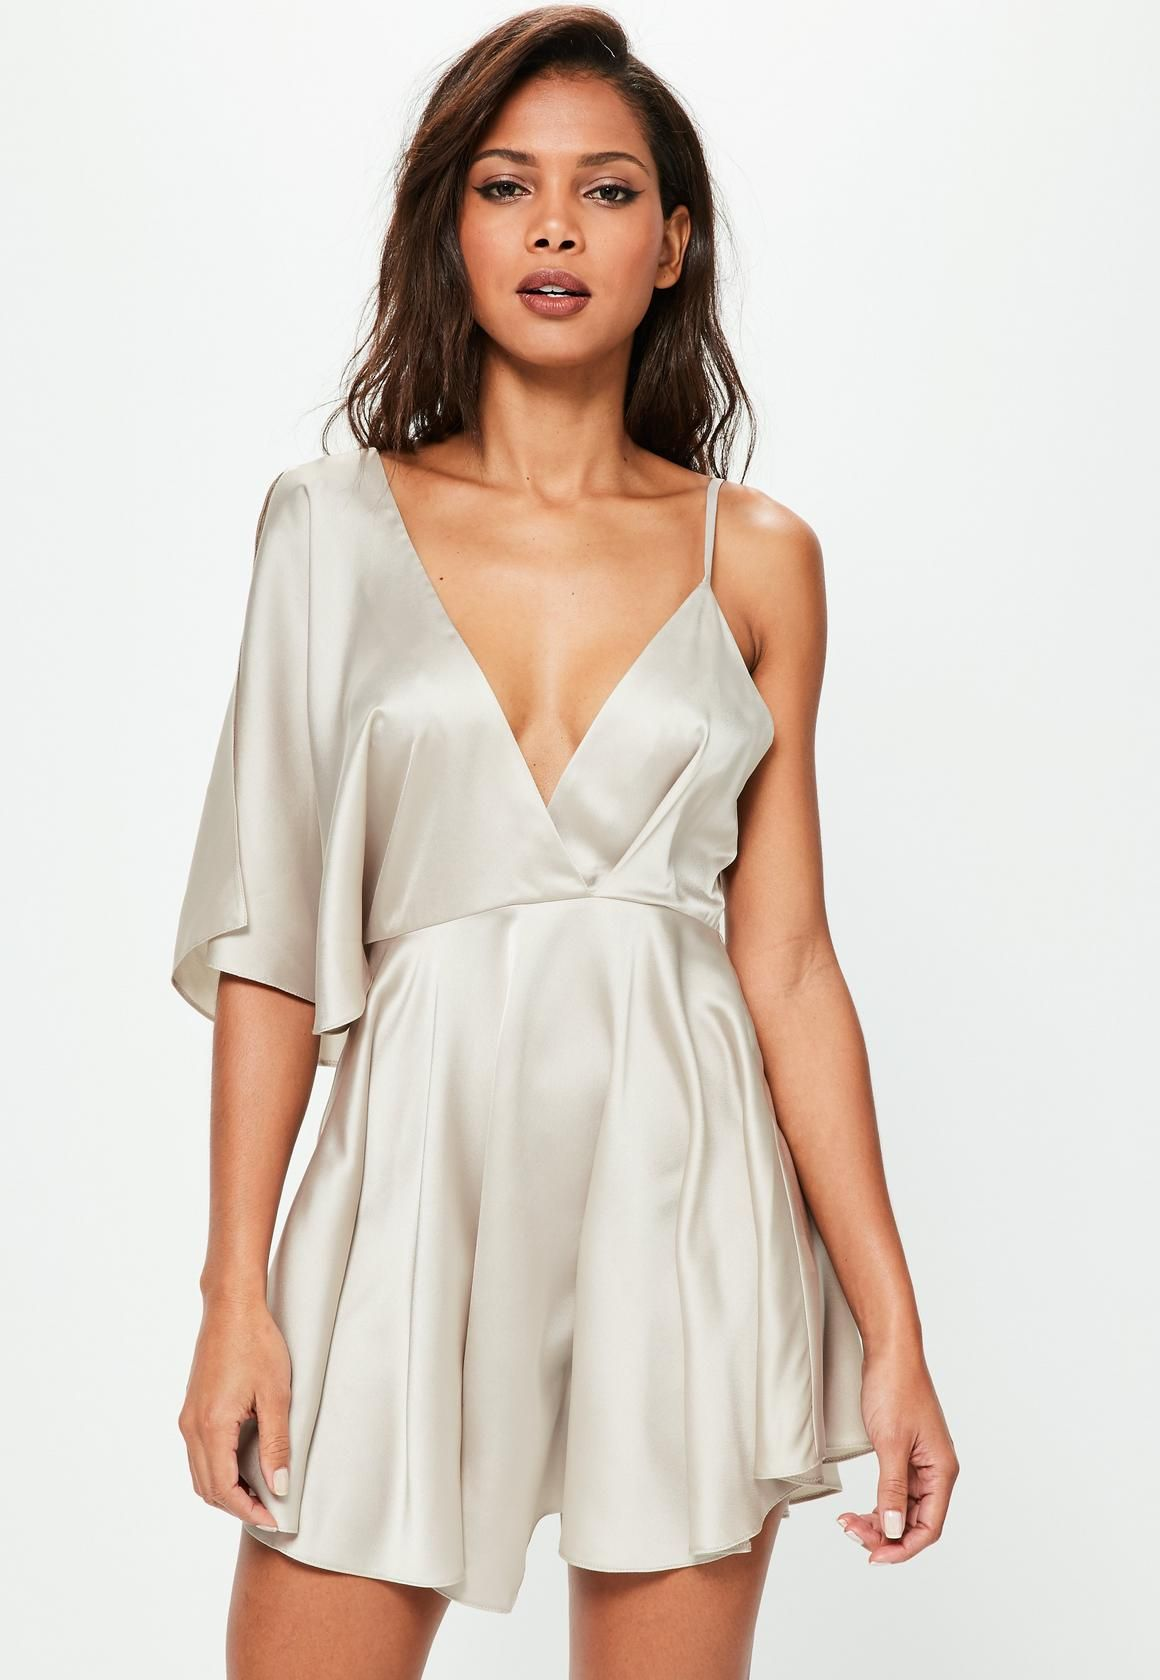 fe6f00060a09 Nude Satin Asymmetric Swing Dress - Missguided